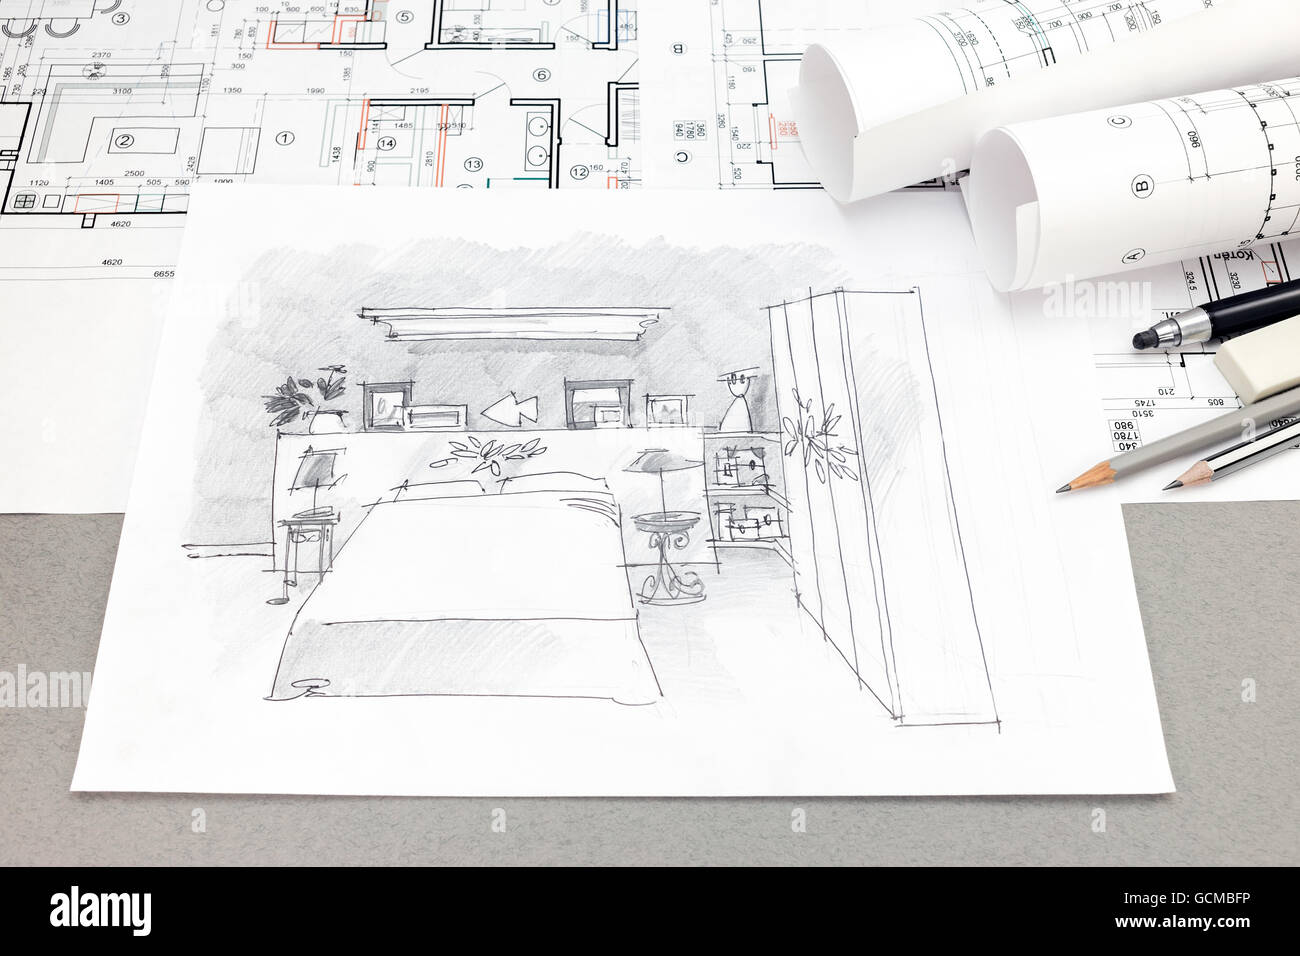 Top view of architectural hand drawn sketch blueprint plans and top view of architectural hand drawn sketch blueprint plans and pencils malvernweather Image collections